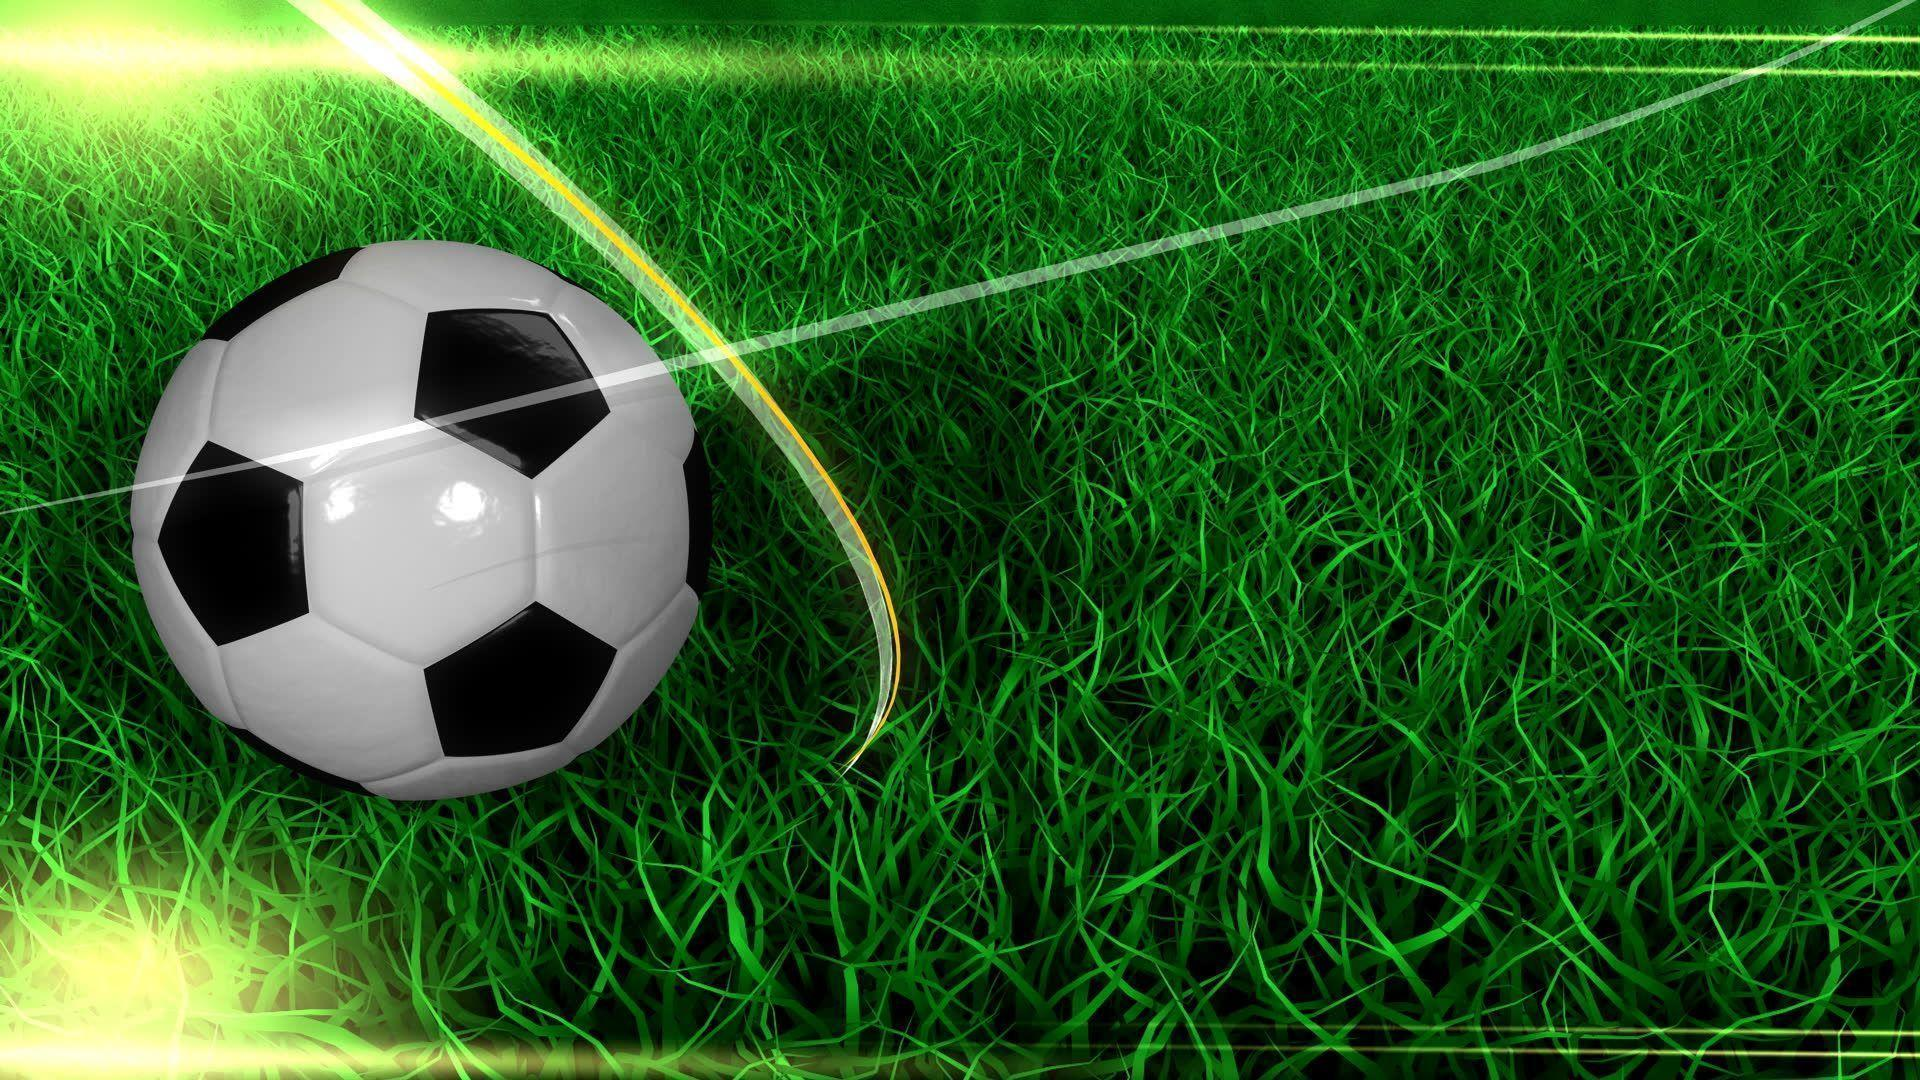 Soccer Backgrounds Stock Photo: Soccer Backgrounds Image